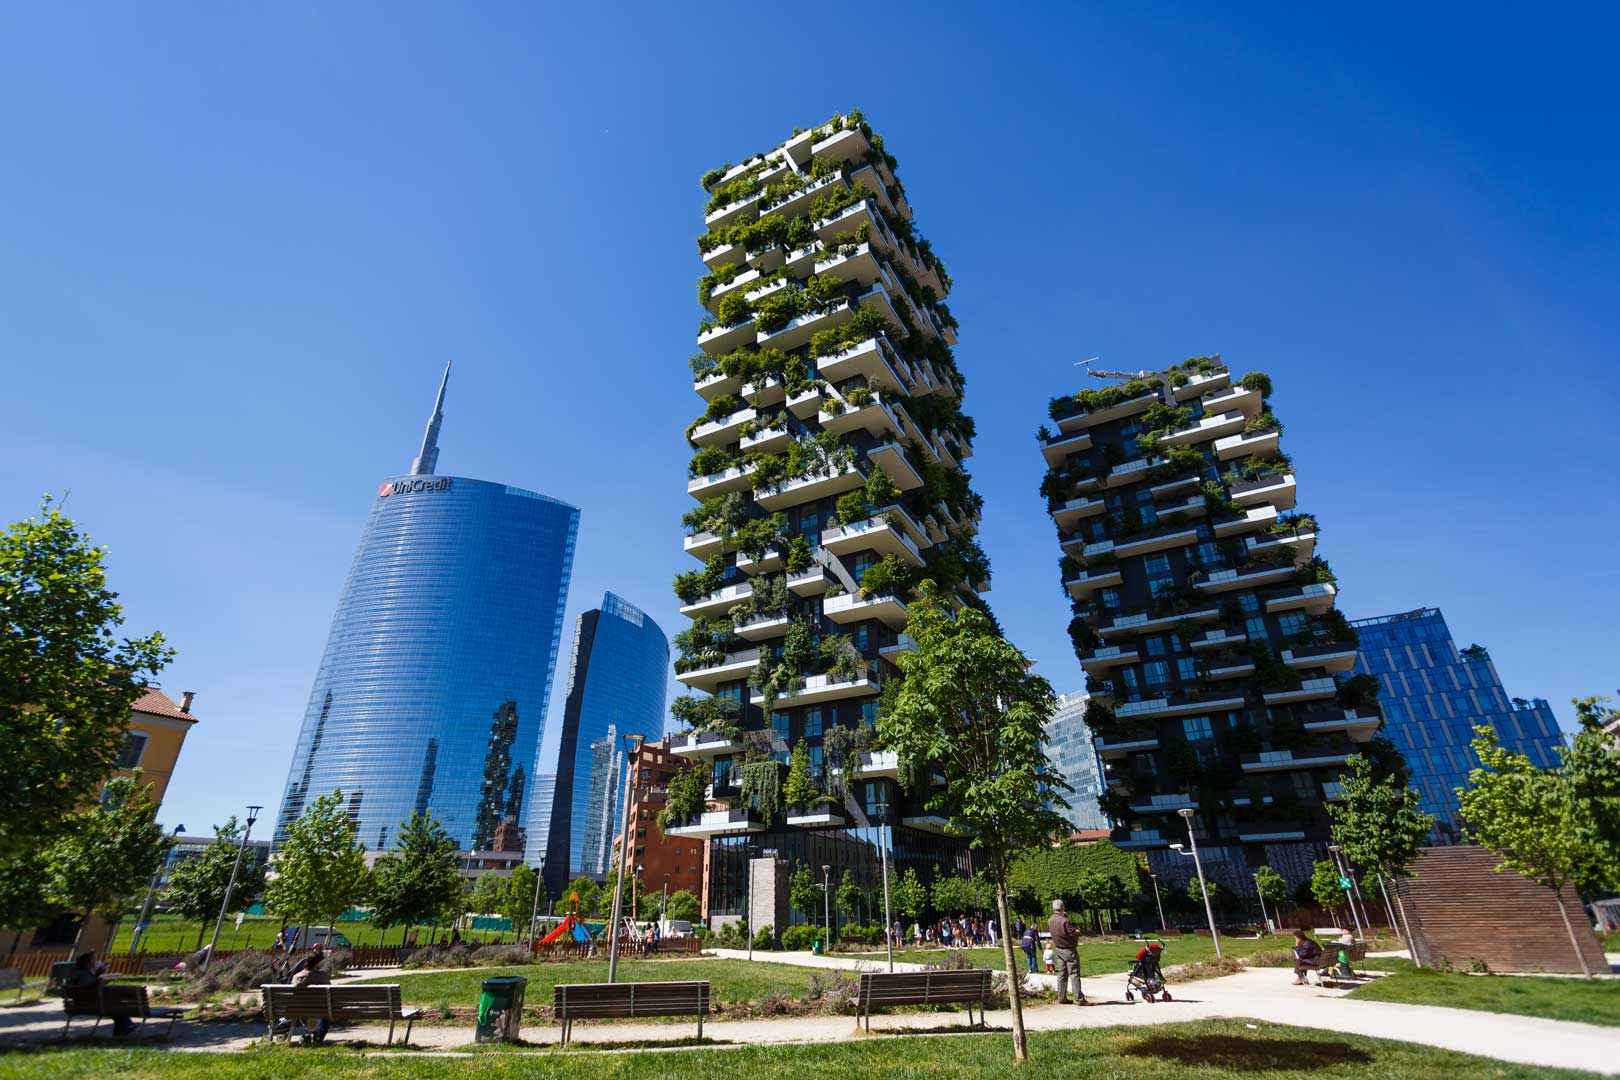 One night at bosco verticale flawless milano